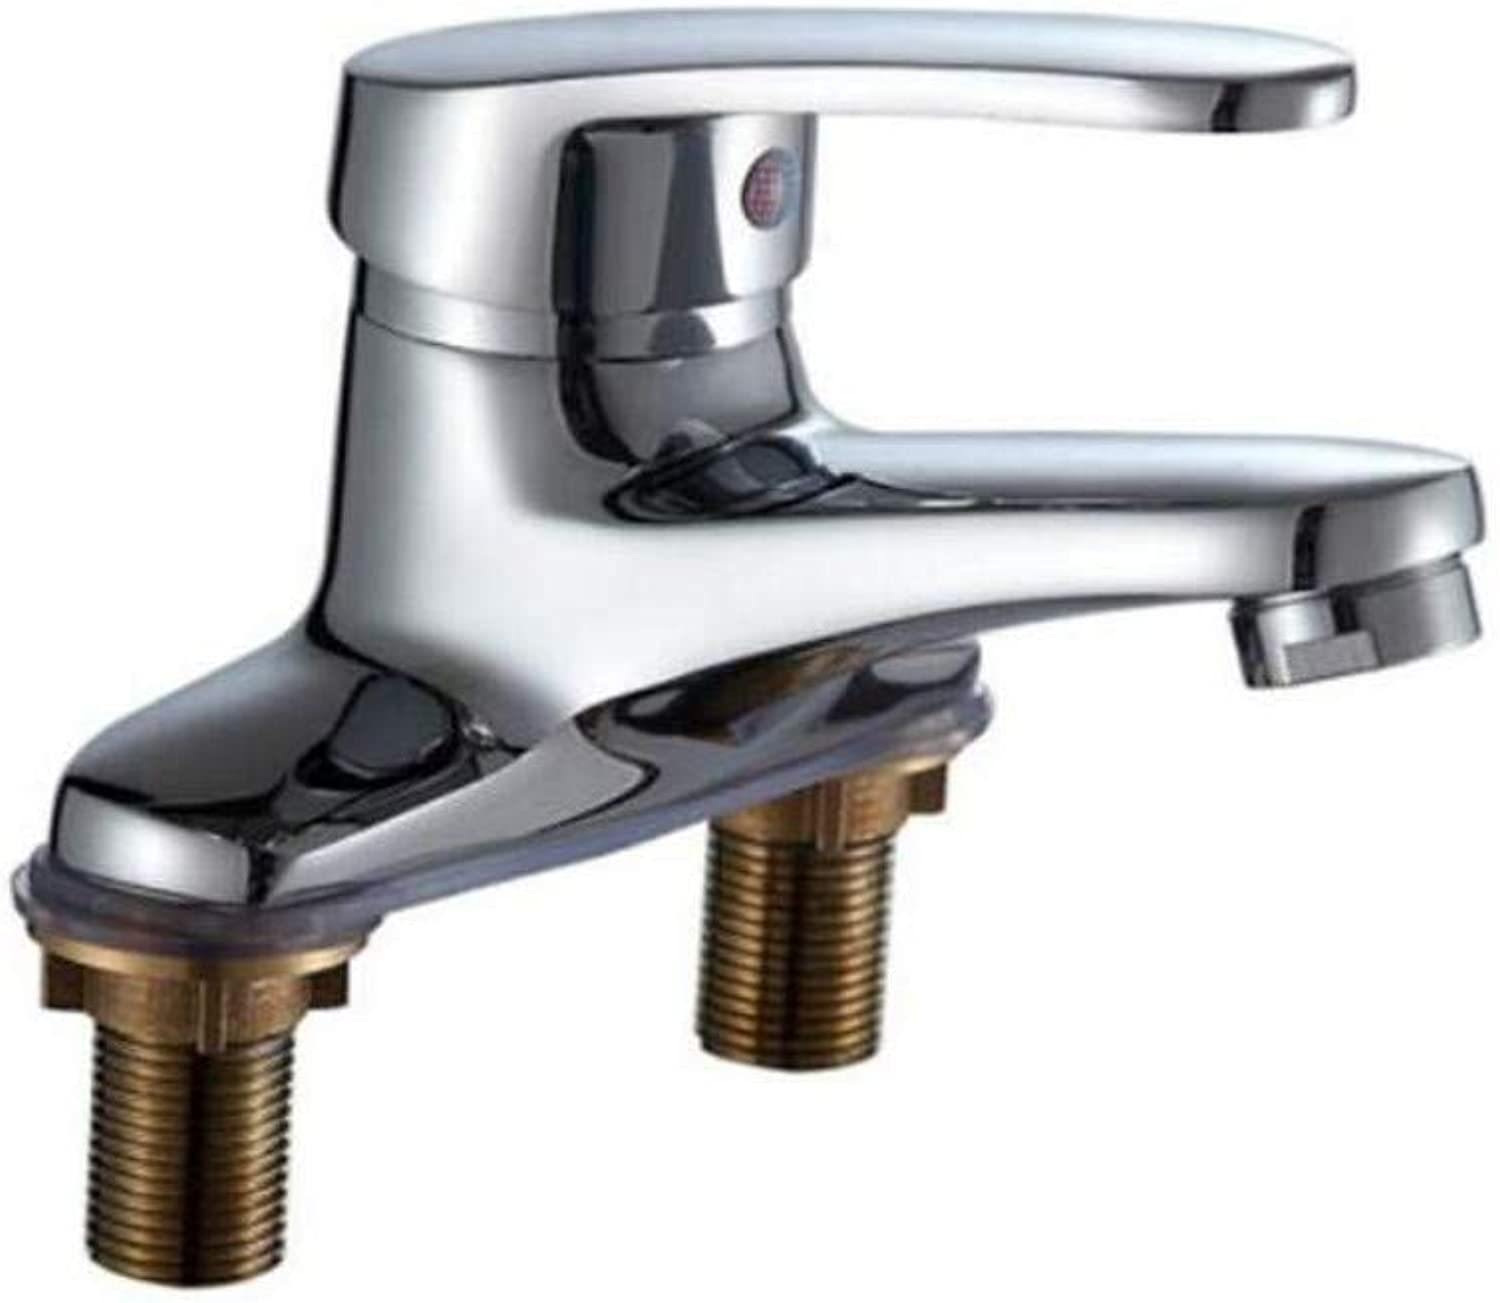 Chrome-Plated Vintage Brass Sink Mixer Tap Sanitary Basin Faucet Cold and Hot Washbasin Faucet Double-Hole Face Basin Cold and Hot Water Faucet